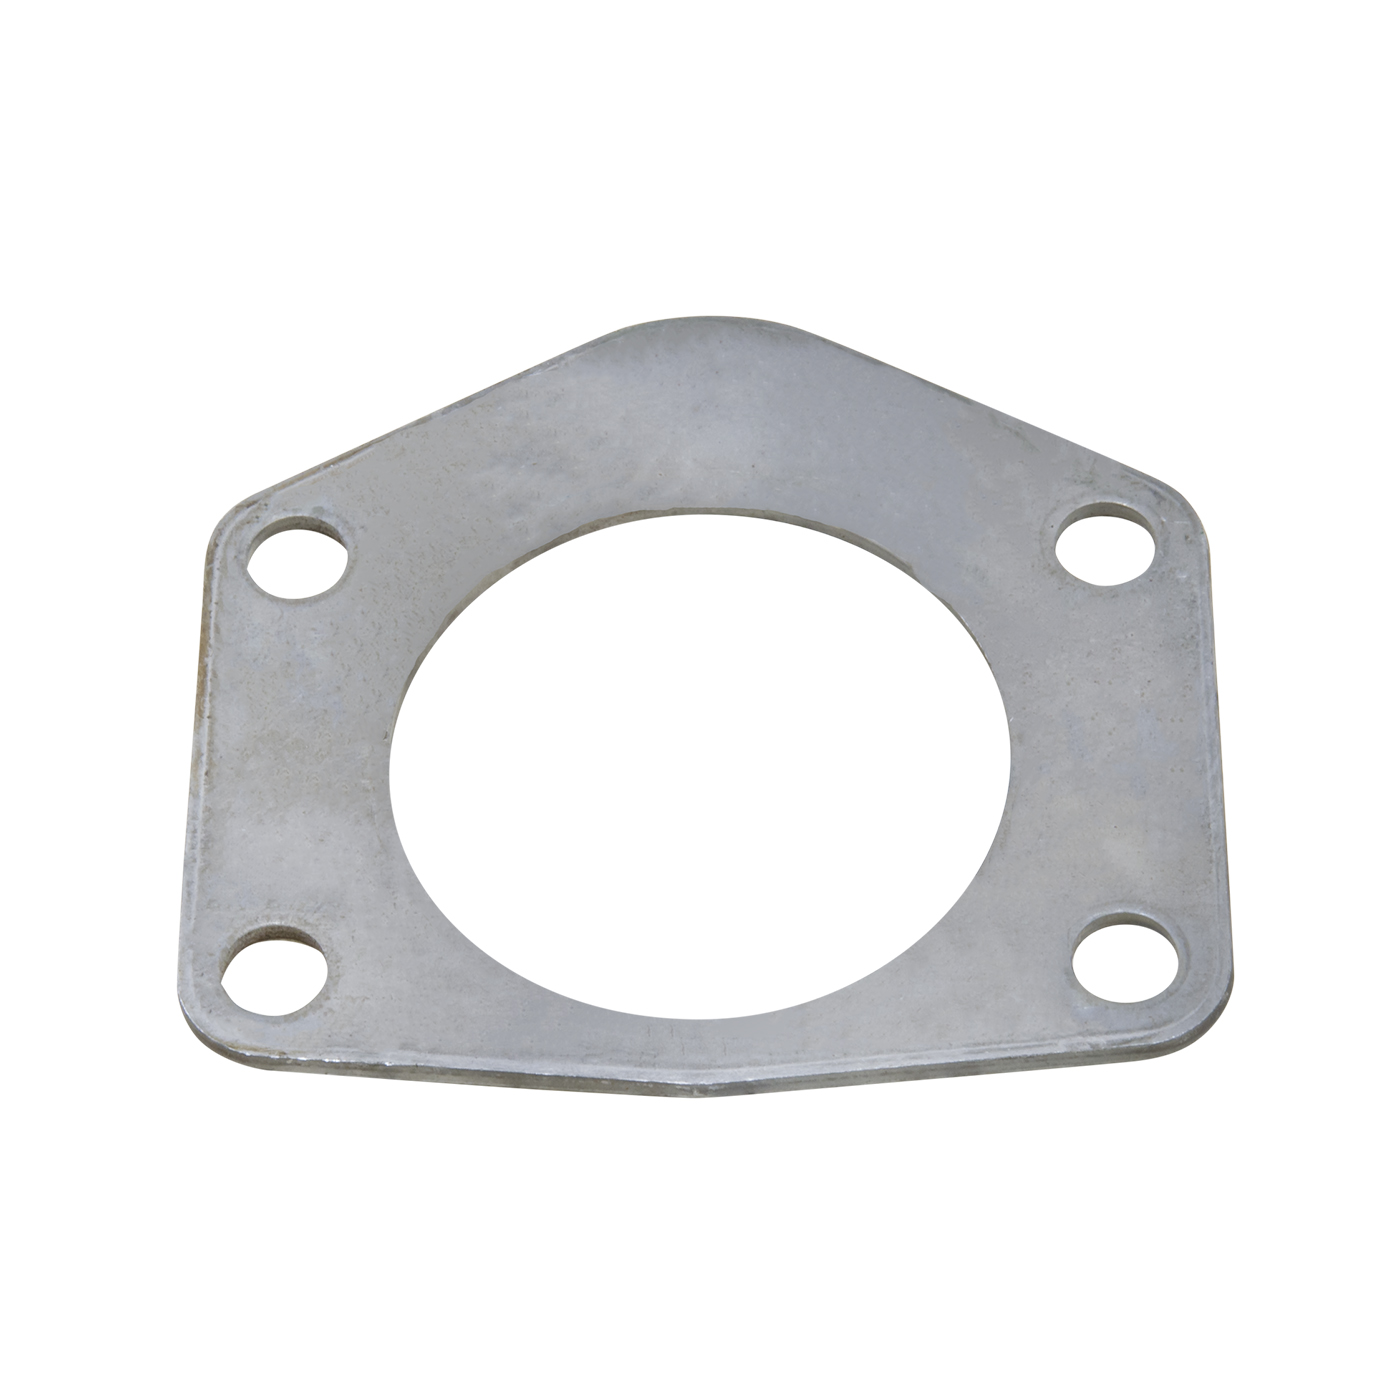 YSPRET-008 - Axle bearing retainer plate for YA D75786-1X & YA D75786-2X